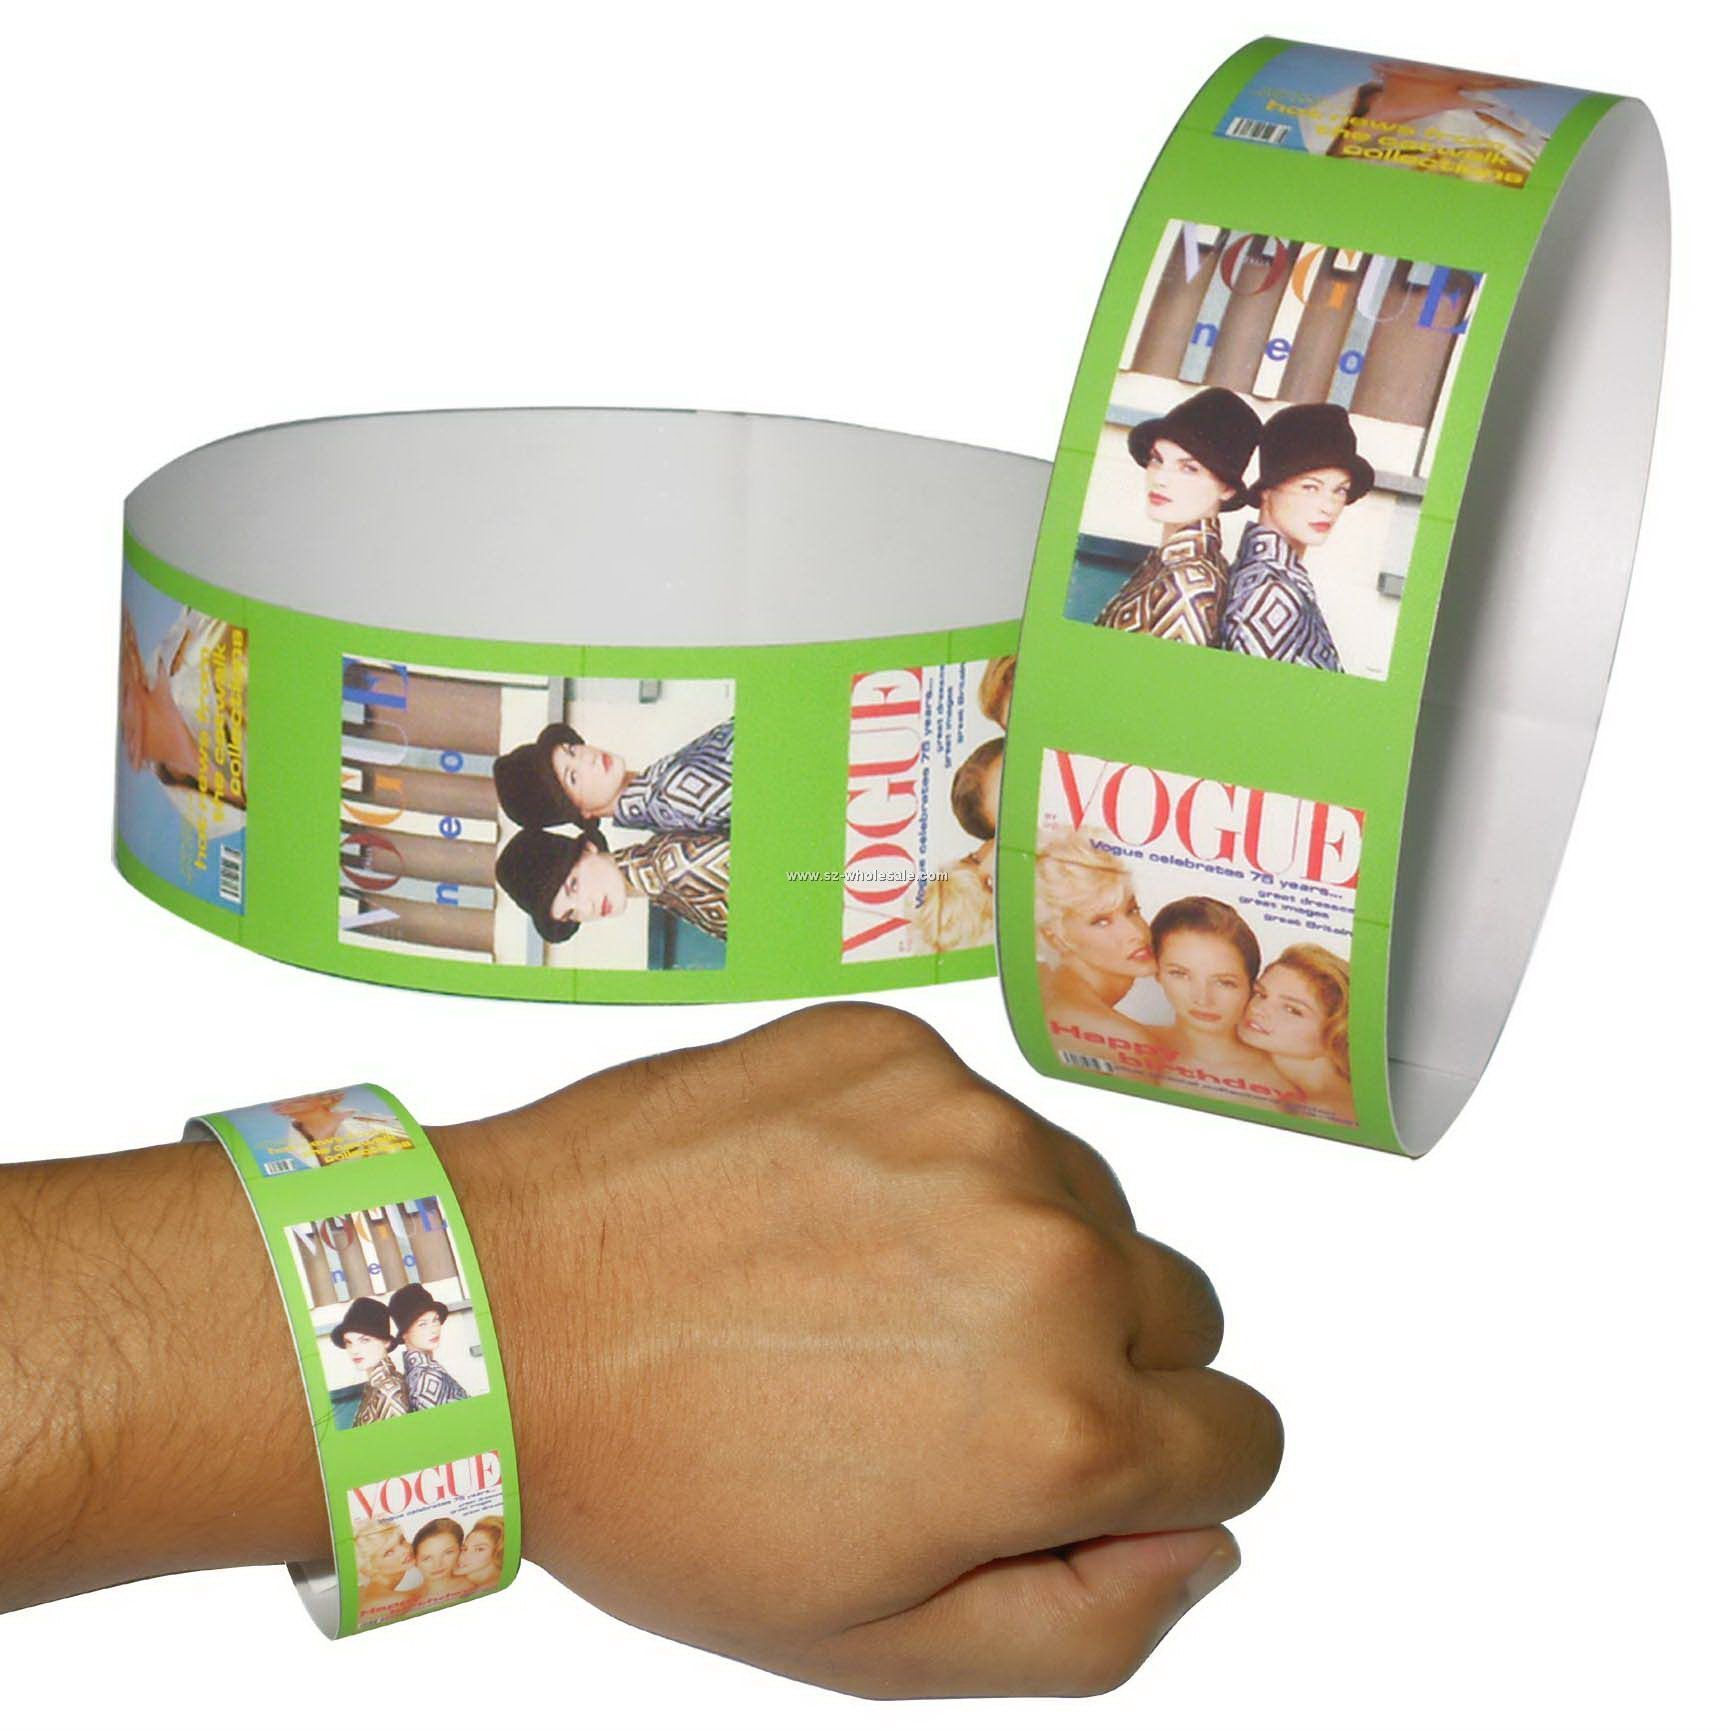 image about Printable Tyvek Wristbands titled TYVEK wristbands-Epoxy stickers,Printing labels,Adhesive